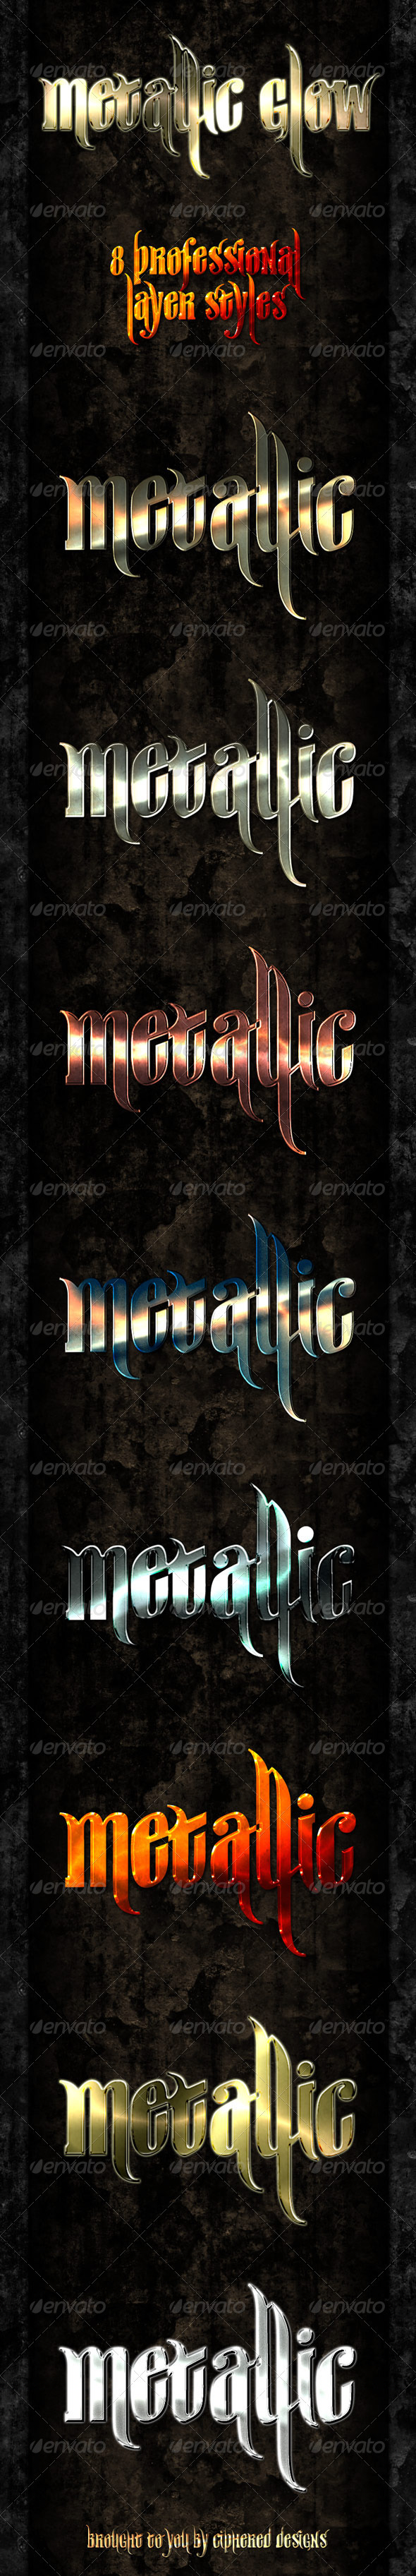 Metallic Glow - Professional Styles - Text Effects Styles